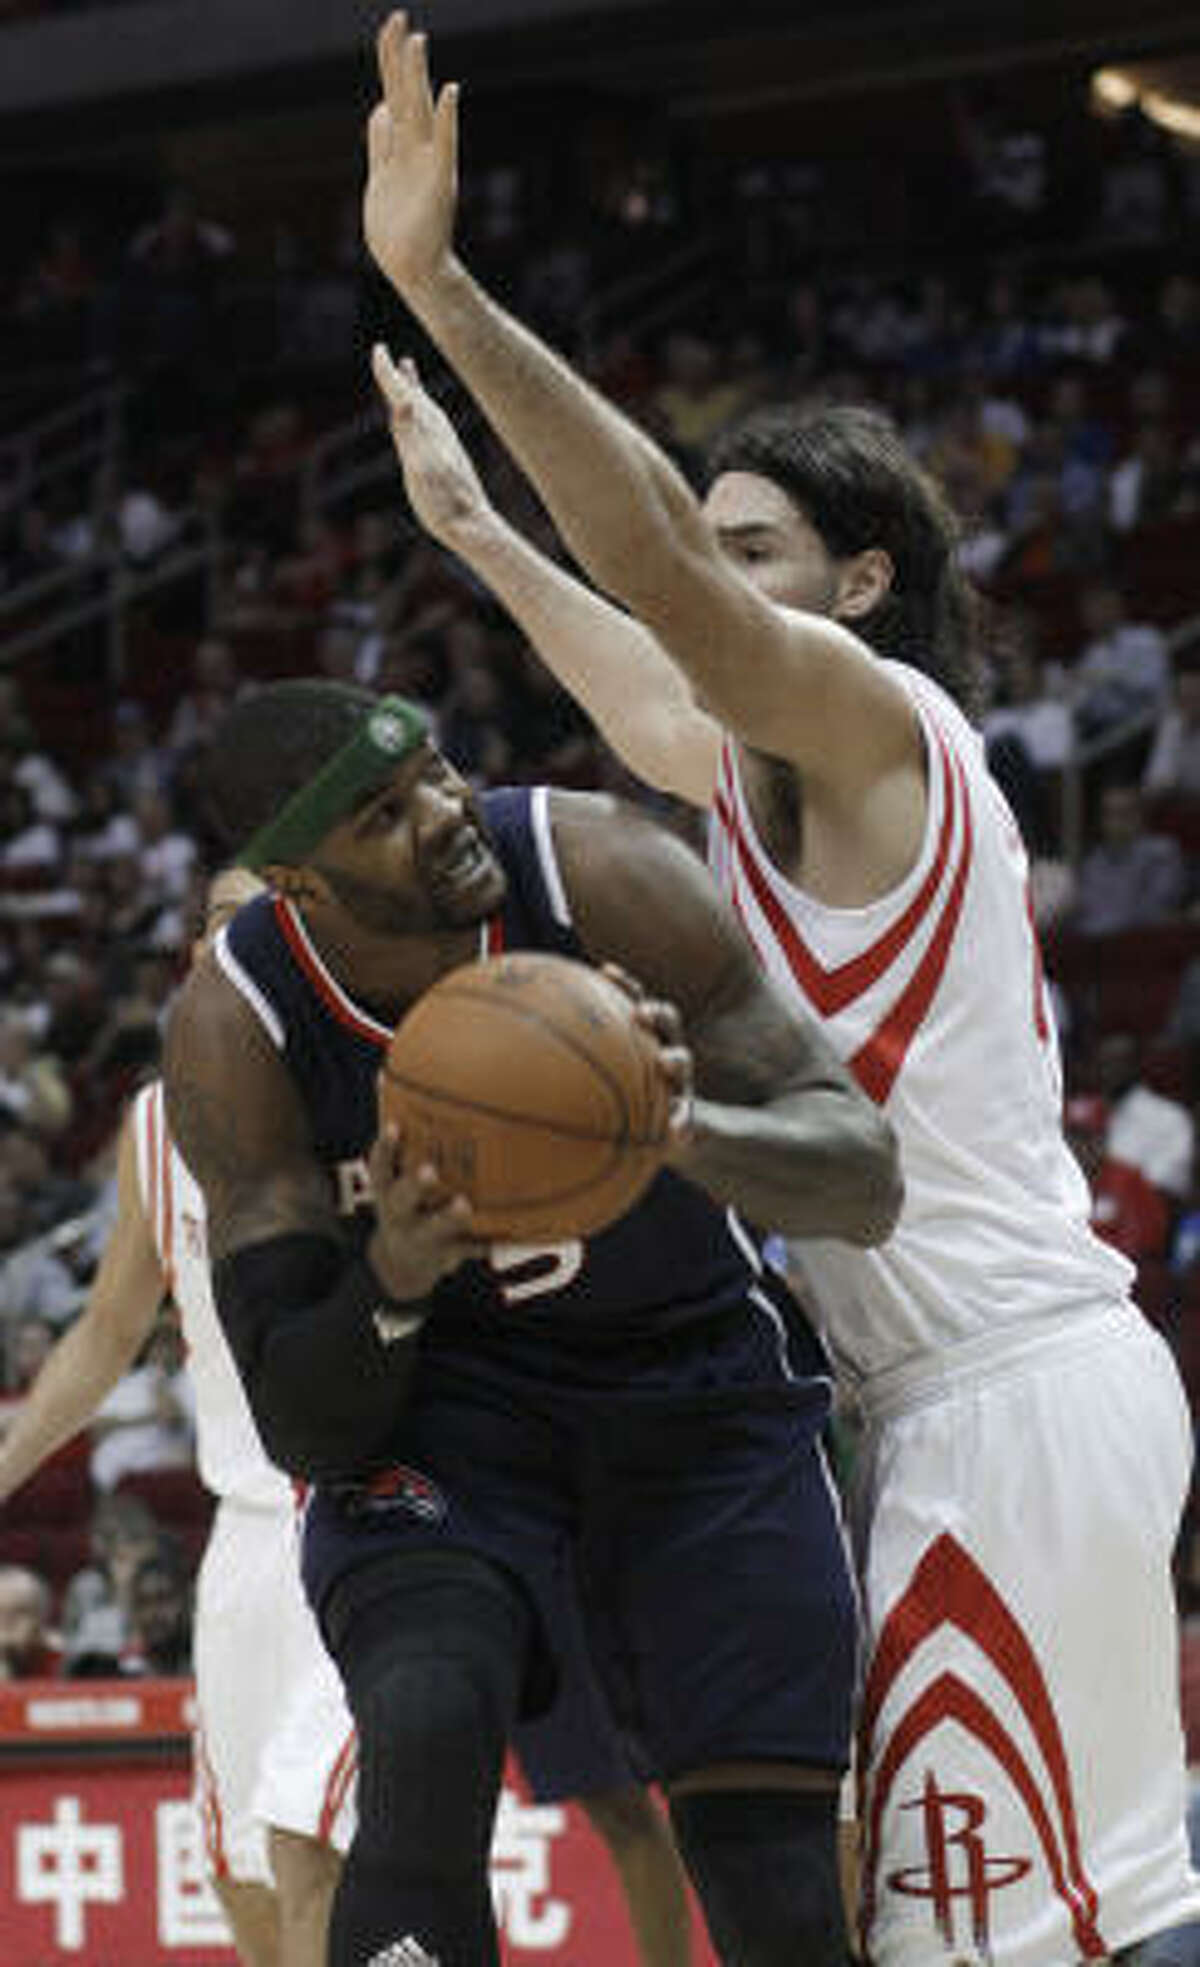 Hawks forward Josh Smith, left, looks to get past Rockets forward Luis Scola in the first half.